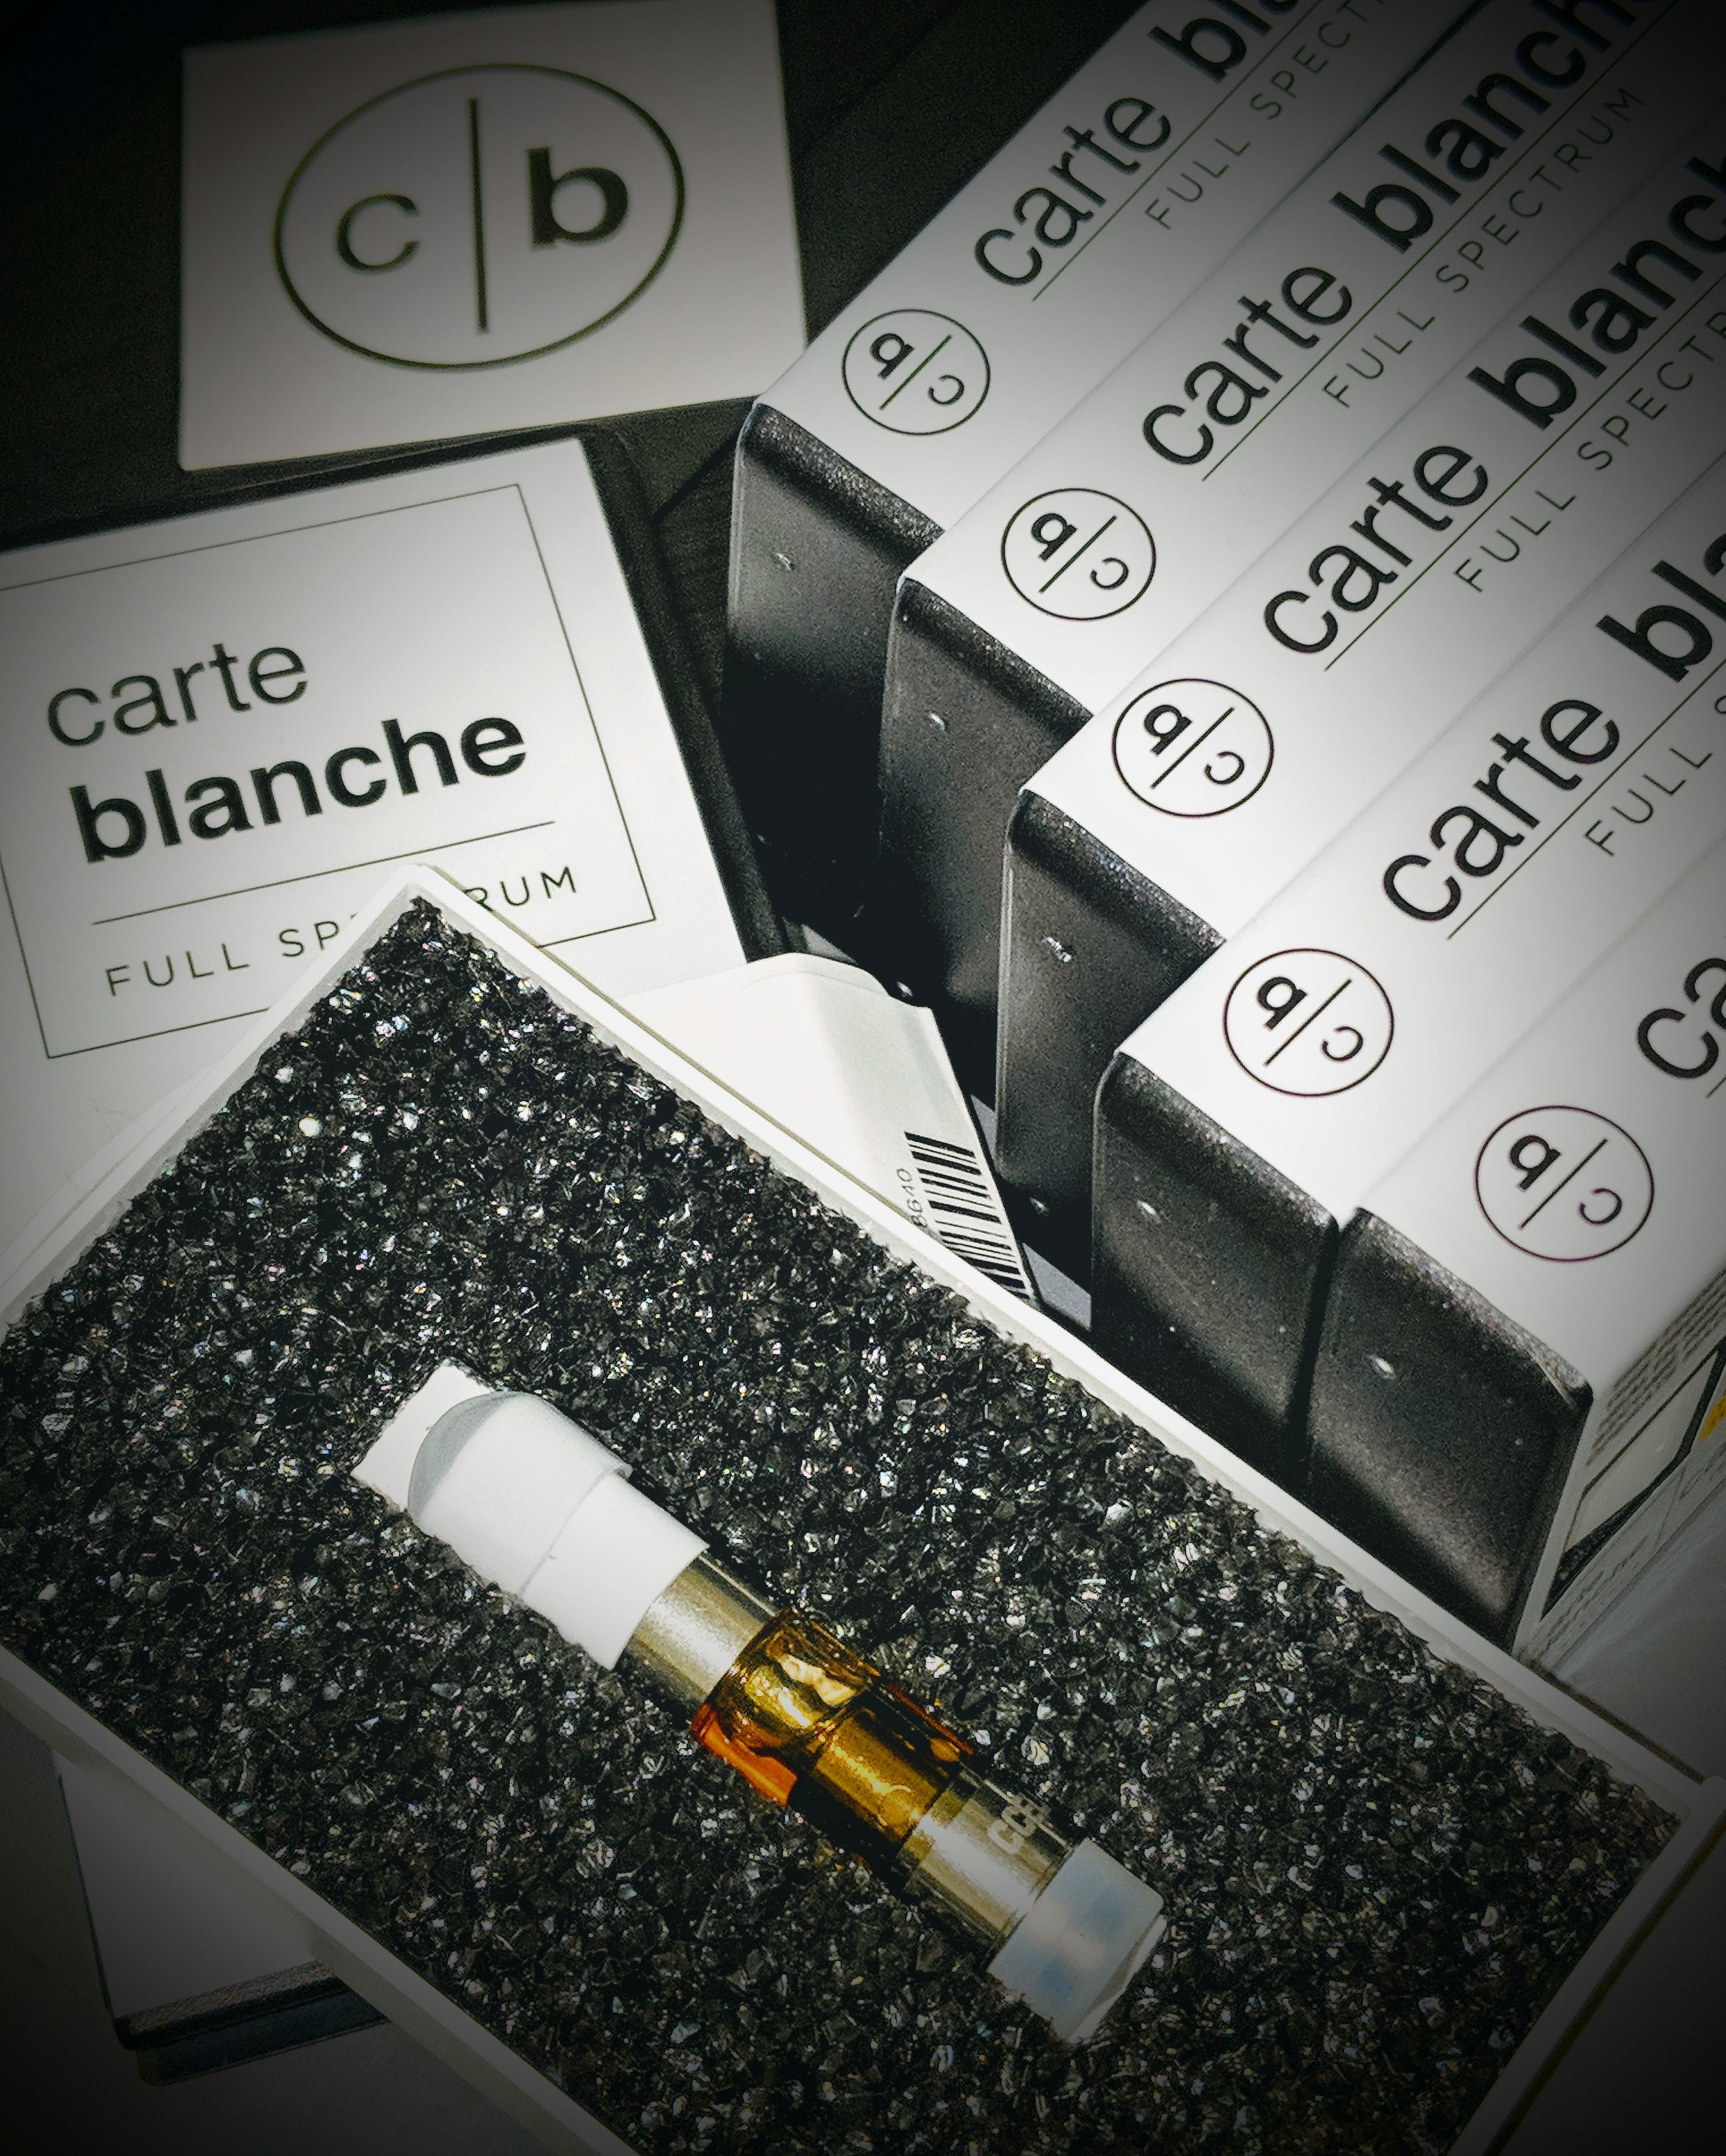 Carte Blanche Cartridges Tumbleweed De Beque Menu Page 4 Of 9